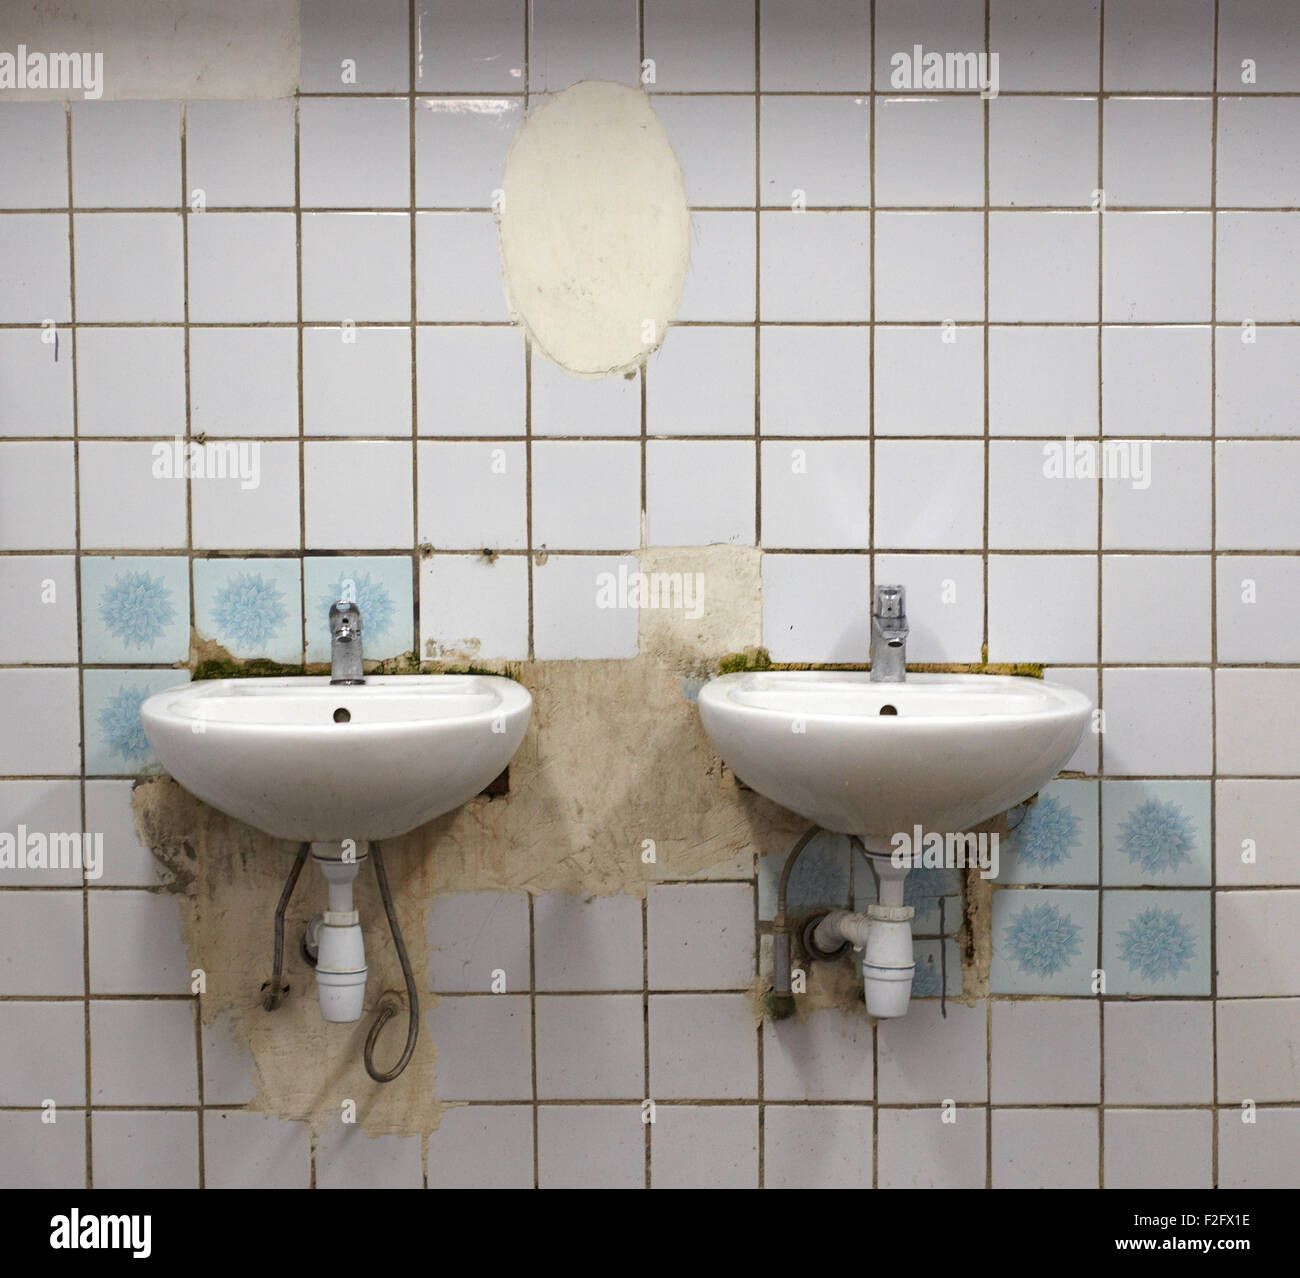 Photo of Old sinks in a public toilets Stock Photo: 87630858 - Alamy